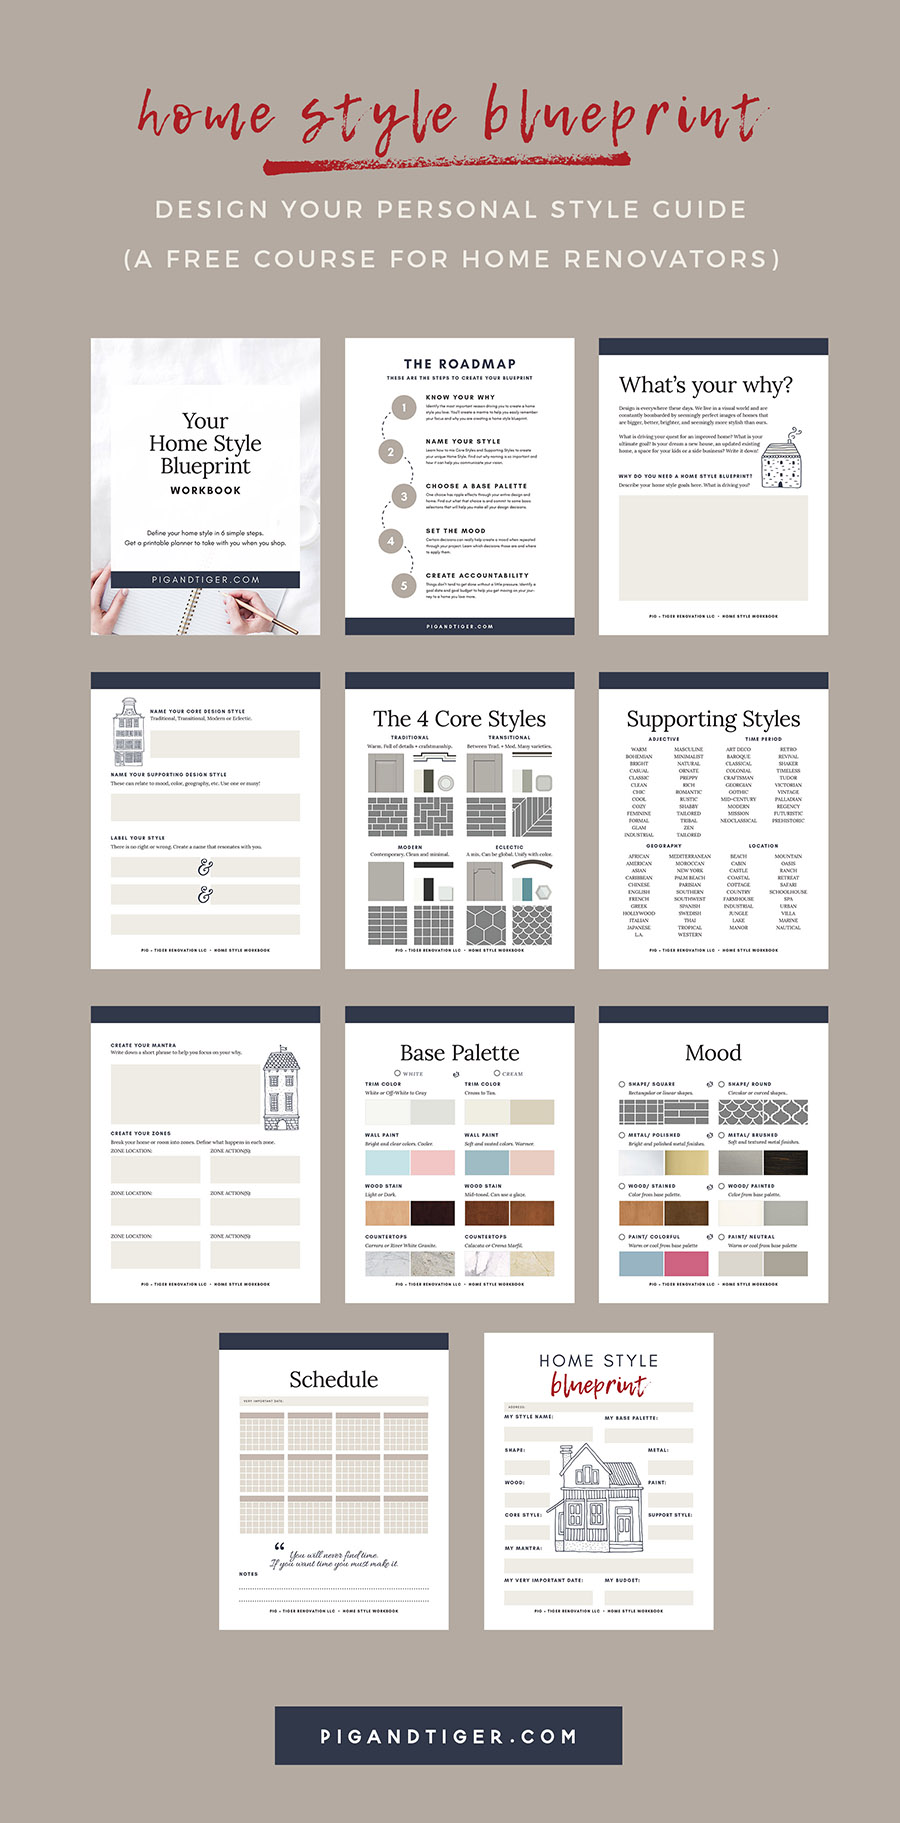 Design your Personal Home Style Guide with the HOME STYLE BLUEPRINT - a free course for renovators